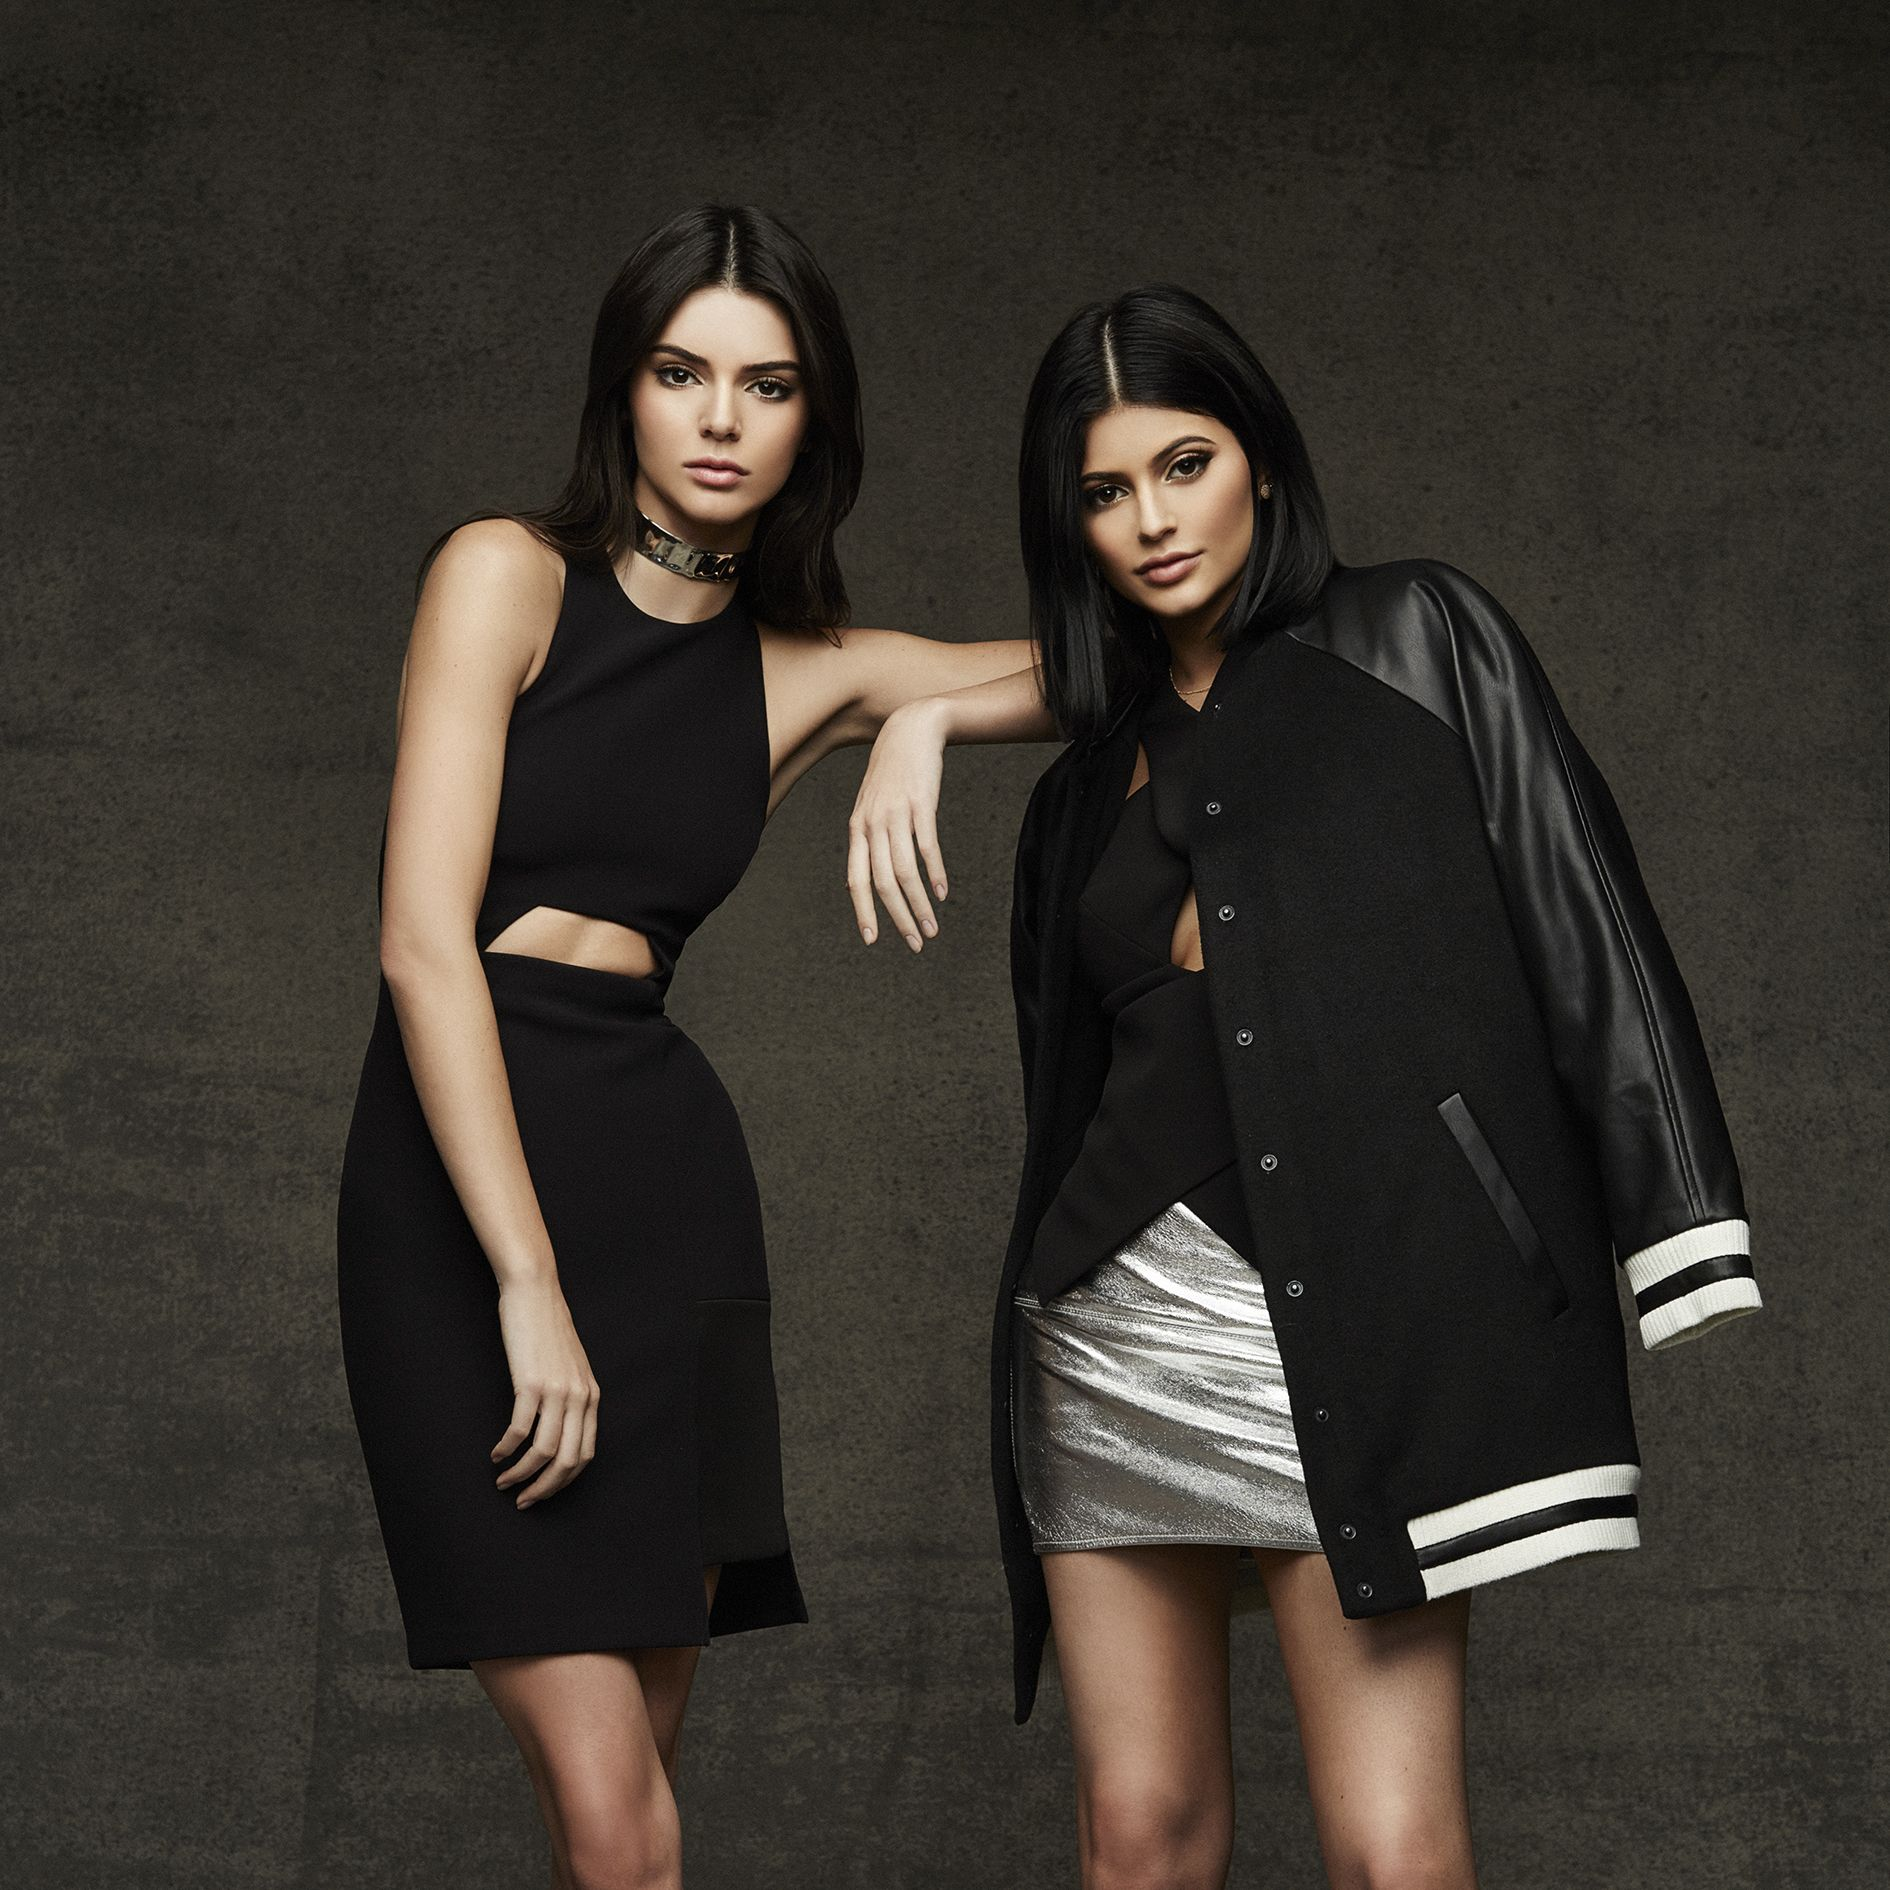 Kendall and Kylie Jenner's Topshop Christmas collection is coming